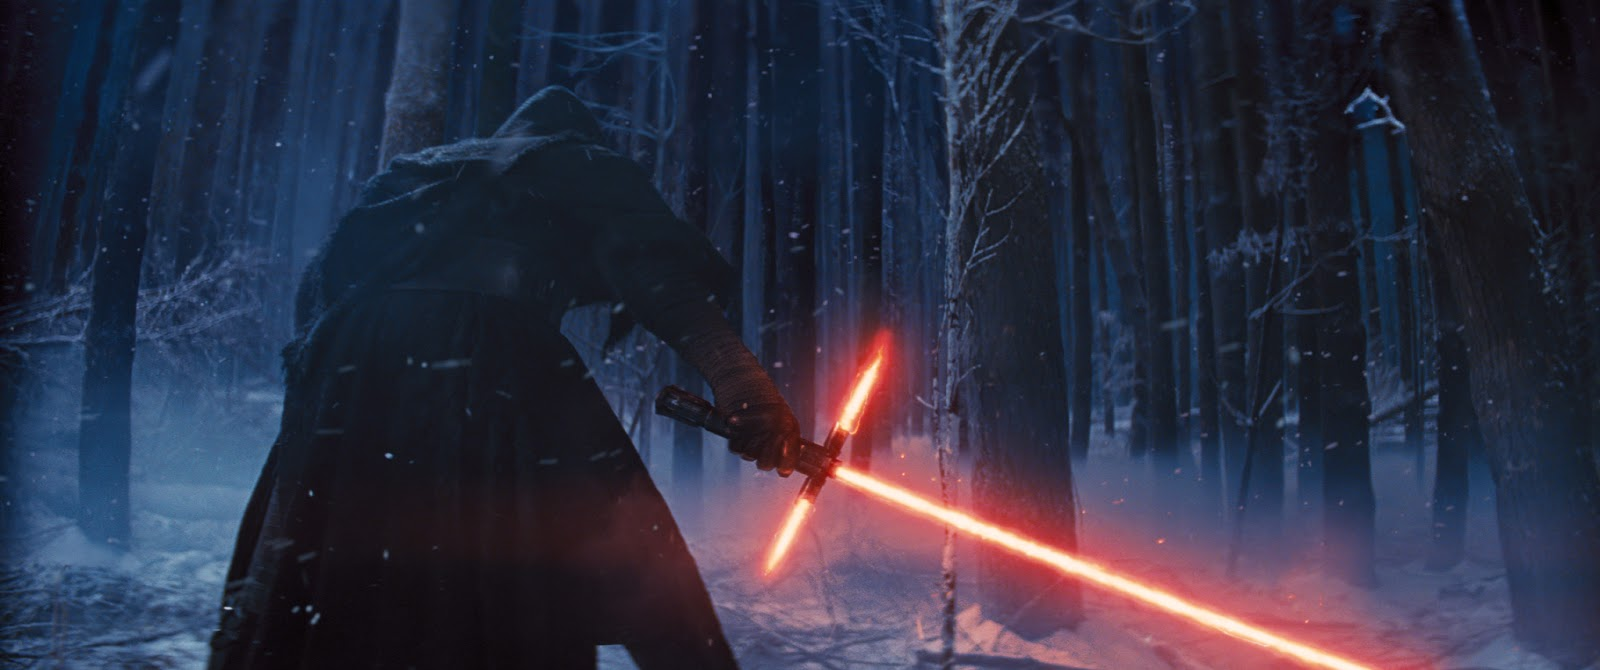 A screen grab from the trailer:  a figure in black stands in a wintery forest.  He weilds a lightsaber, but this one is shaped more like a broadsword, complete with two energy discharges near the base that form a hilt.